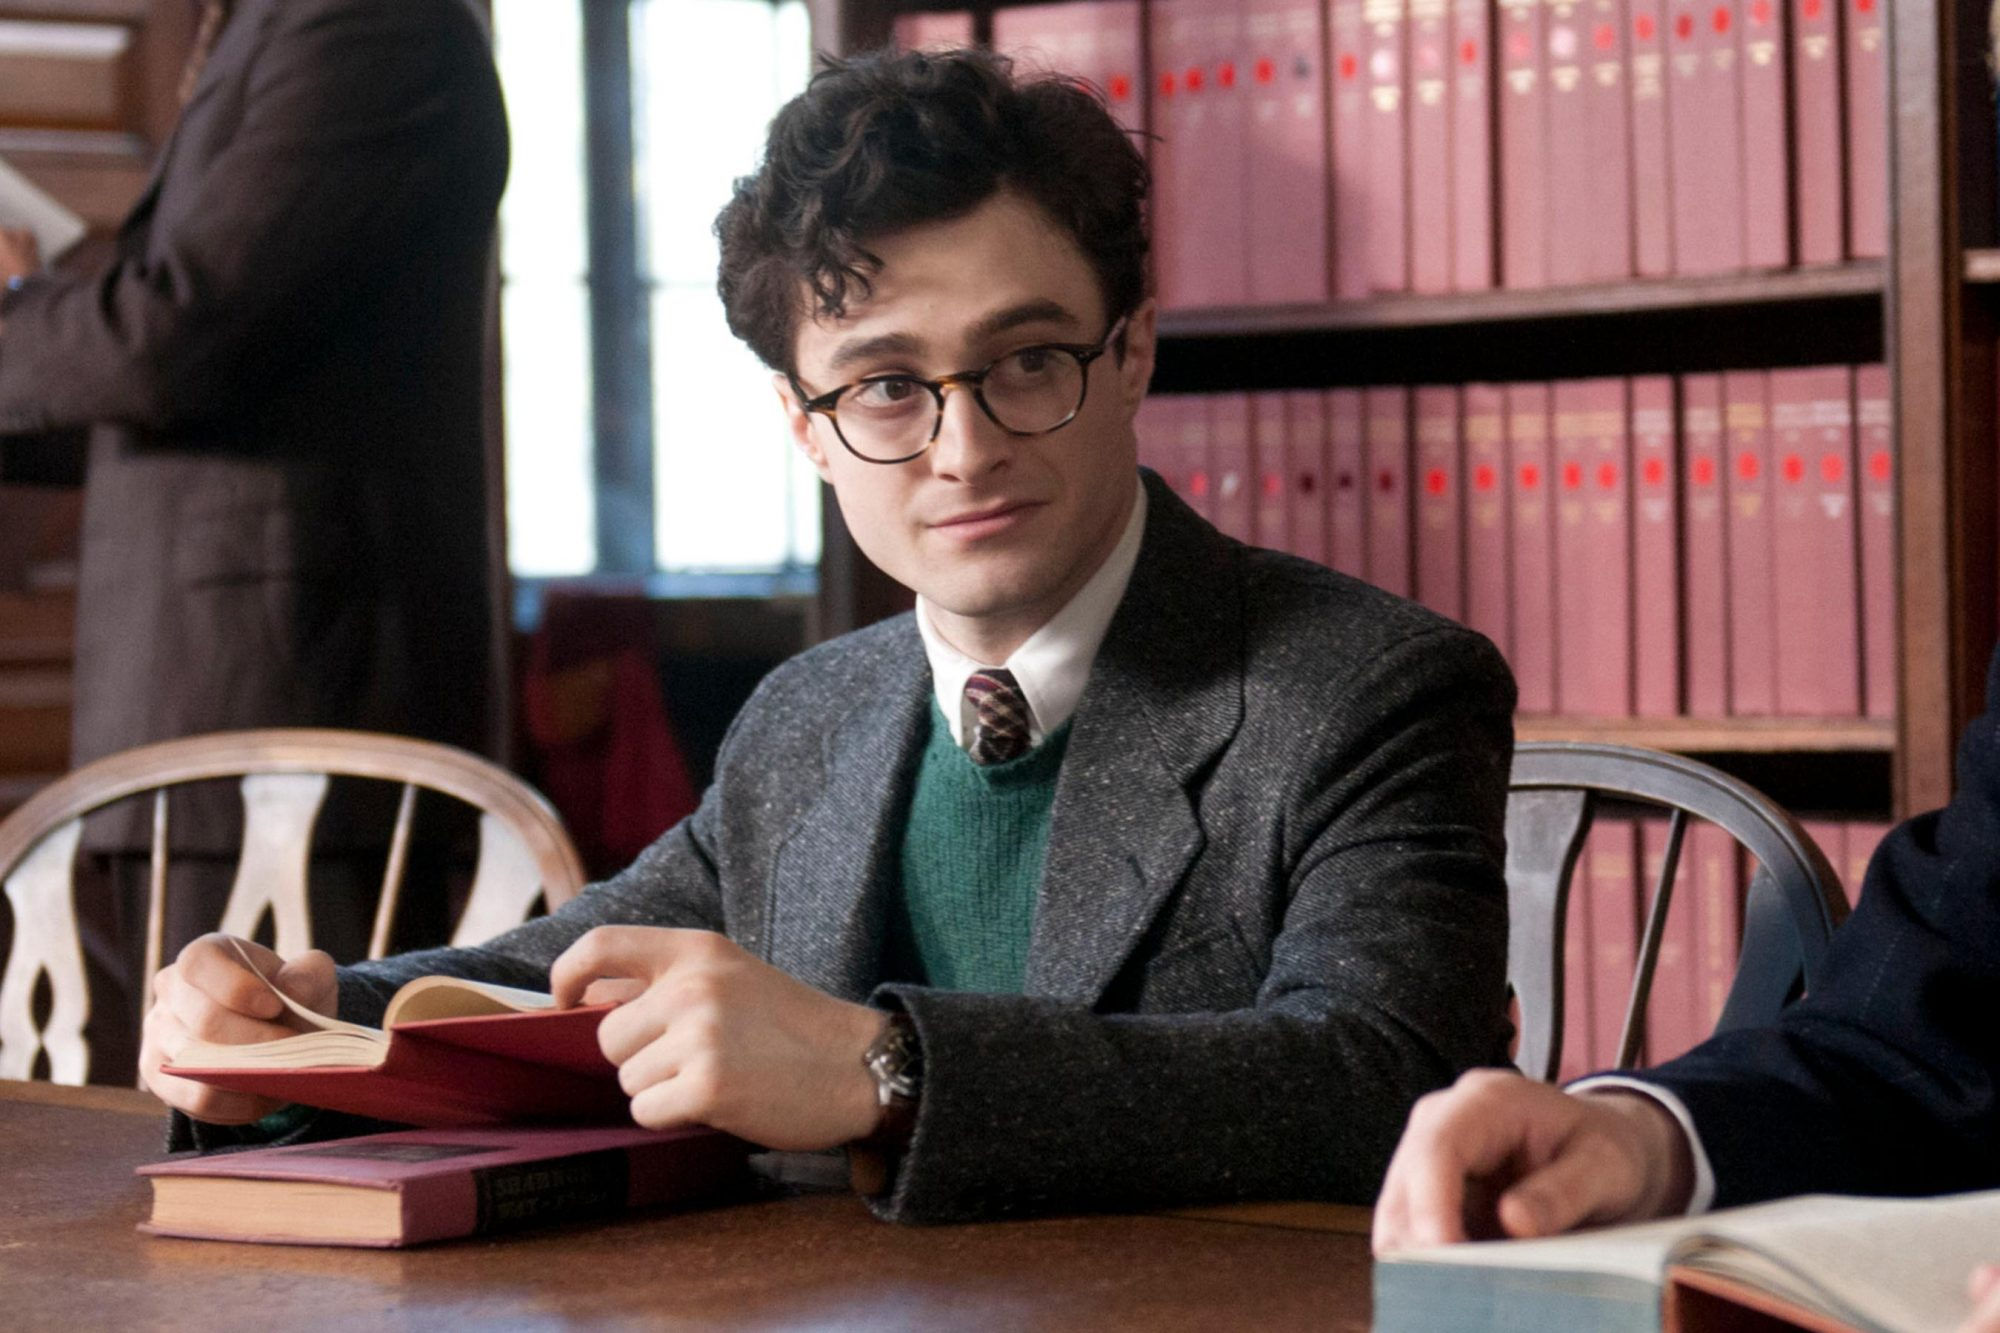 KILL YOUR DARLINGS, from left: Ben Foster, as William Burroughs, Daniel Radcliffe, as Allen Ginsberg